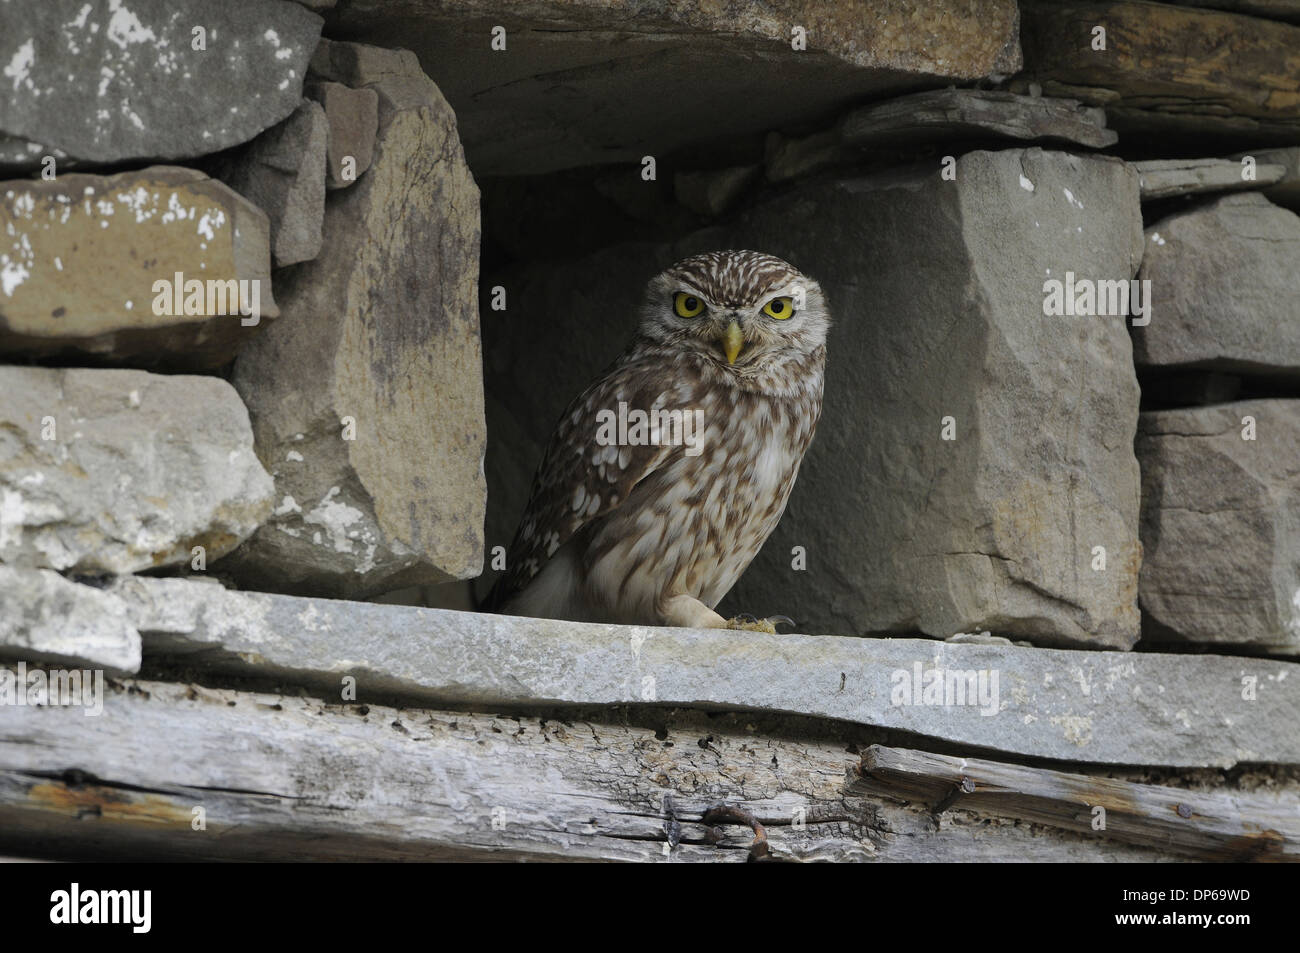 Little Owl (Athene noctua) adult, roosting in old stone building, Lemnos, Greece, May - Stock Image